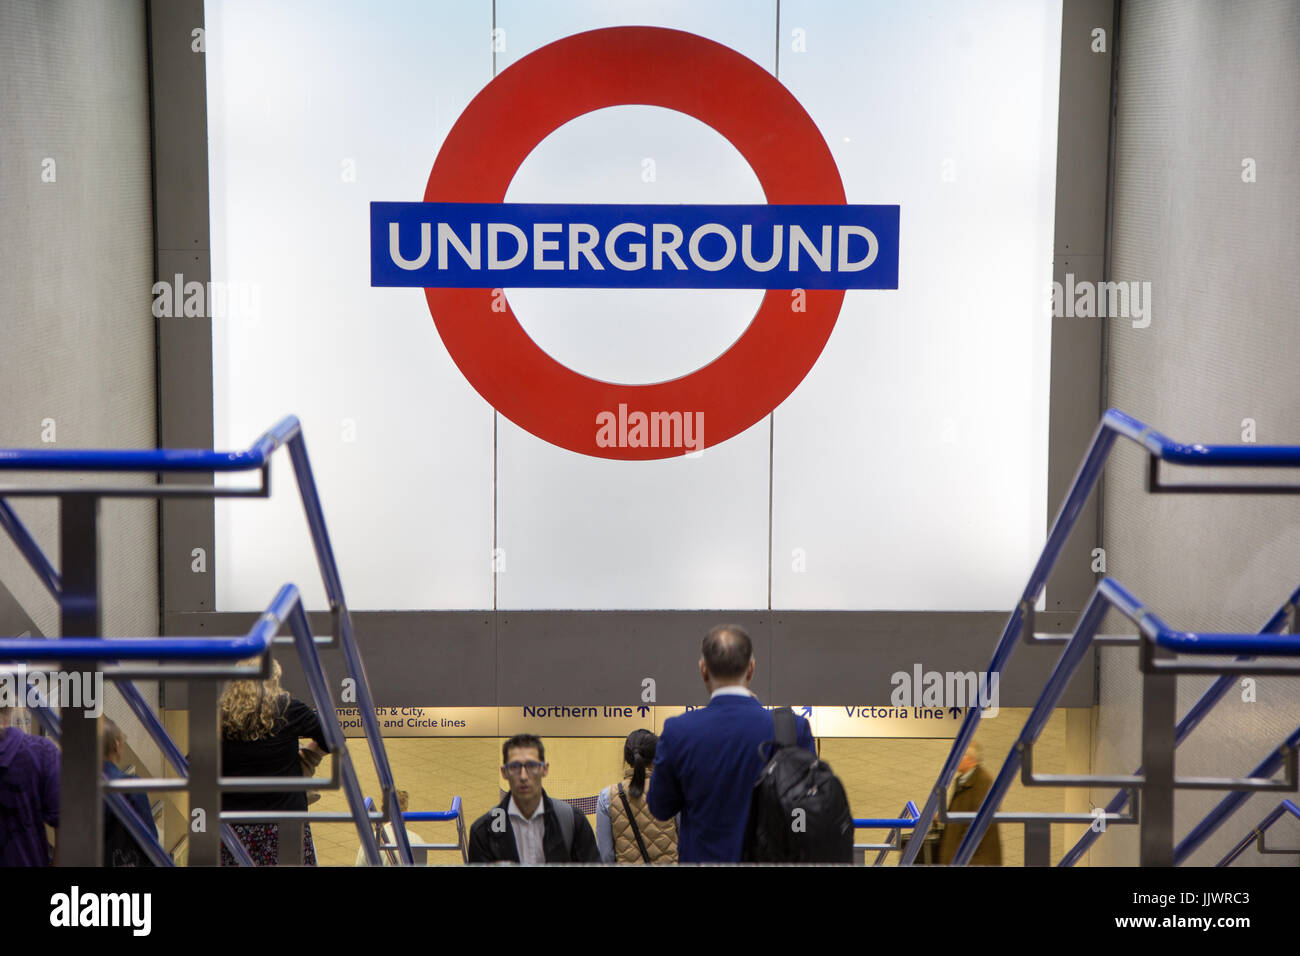 London Underground large logo sign at the King's Cross St. Pancras entrance - Stock Image